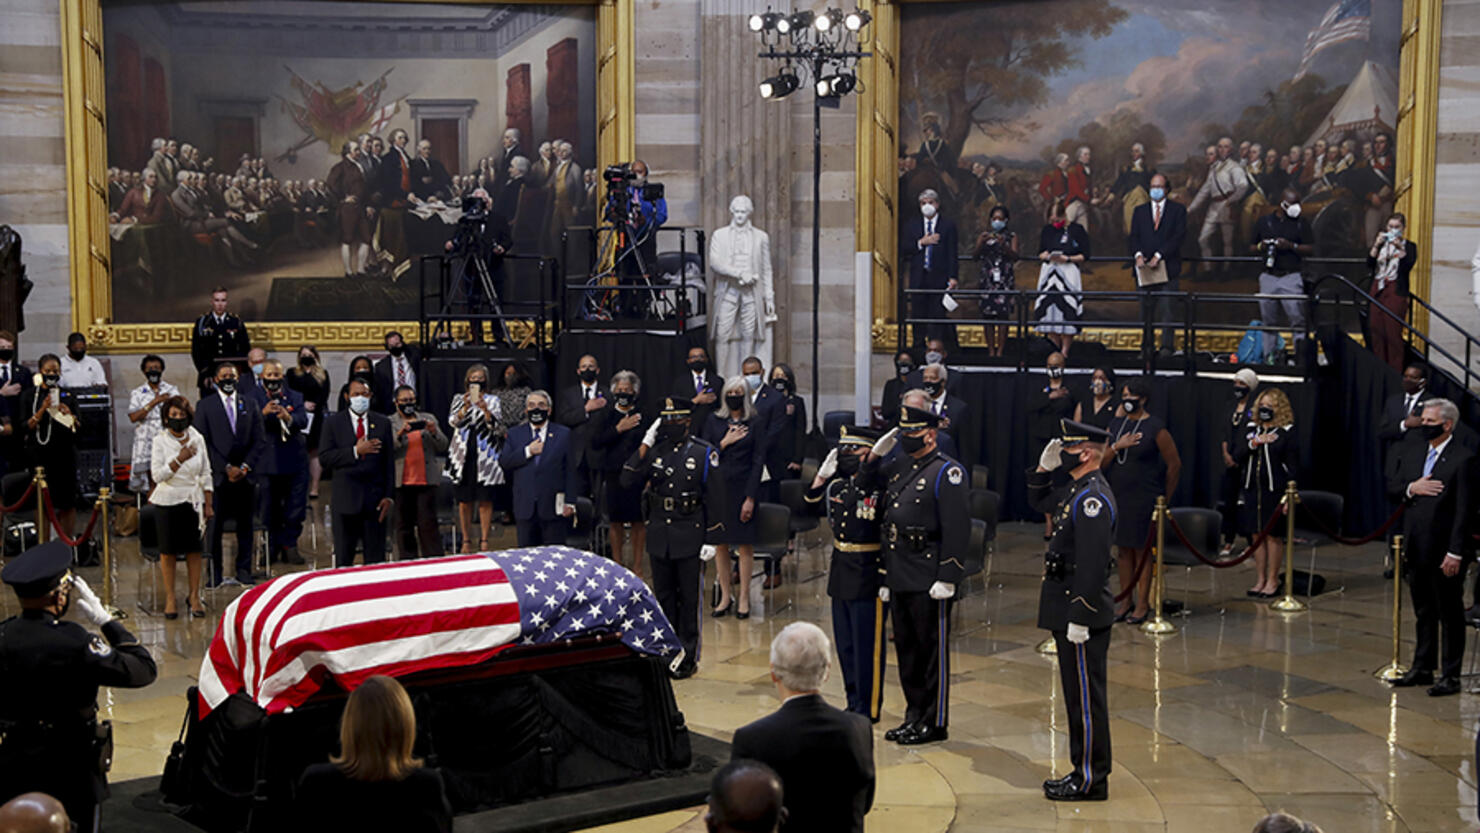 John Lewis Lies In State At The U.S. Capitol